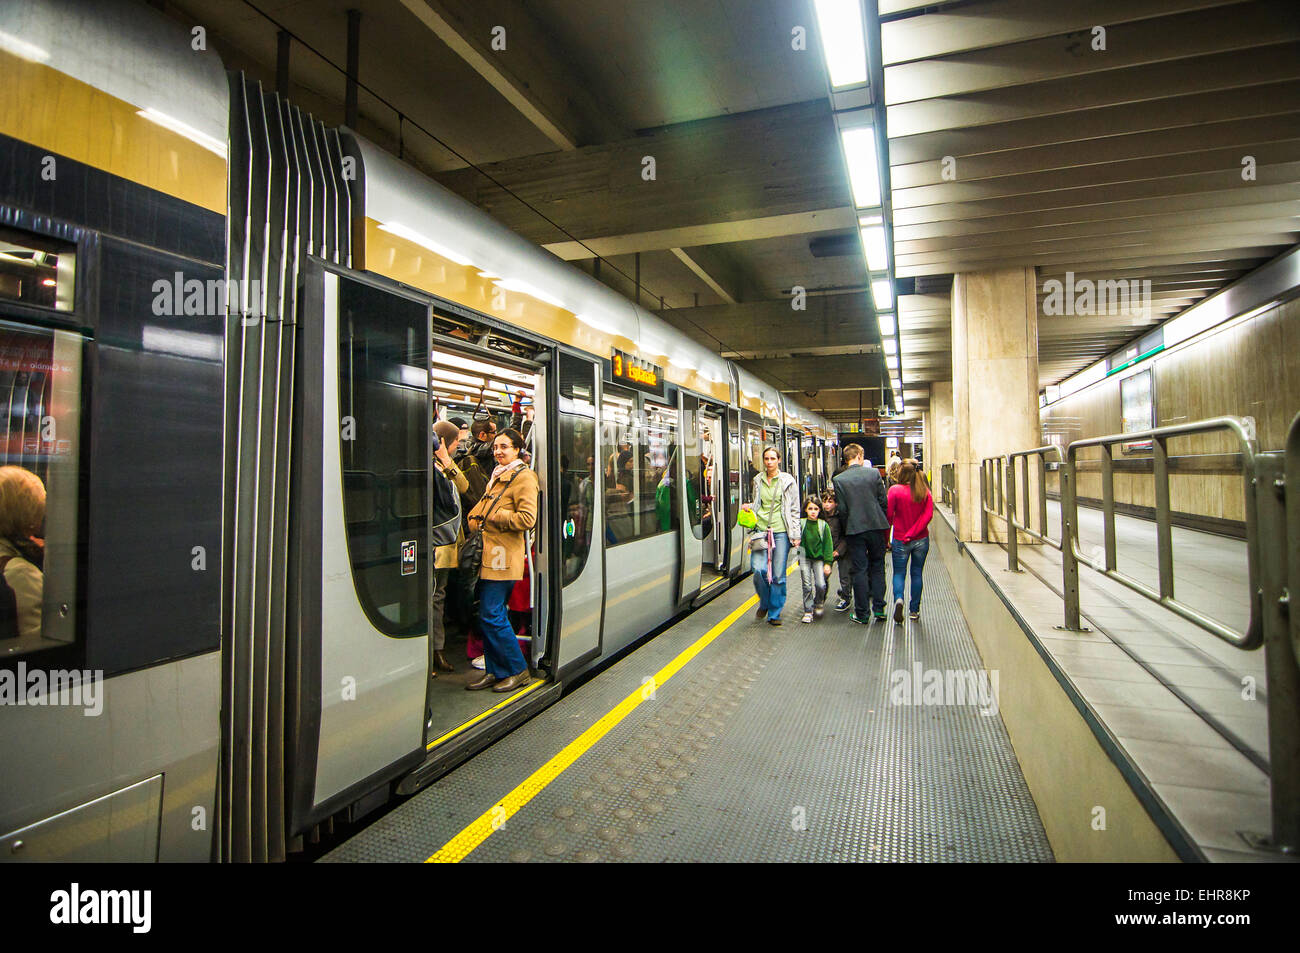 Passengers entering and exiting he smooth and efficient underground trains in Brussels, Belgium. - Stock Image